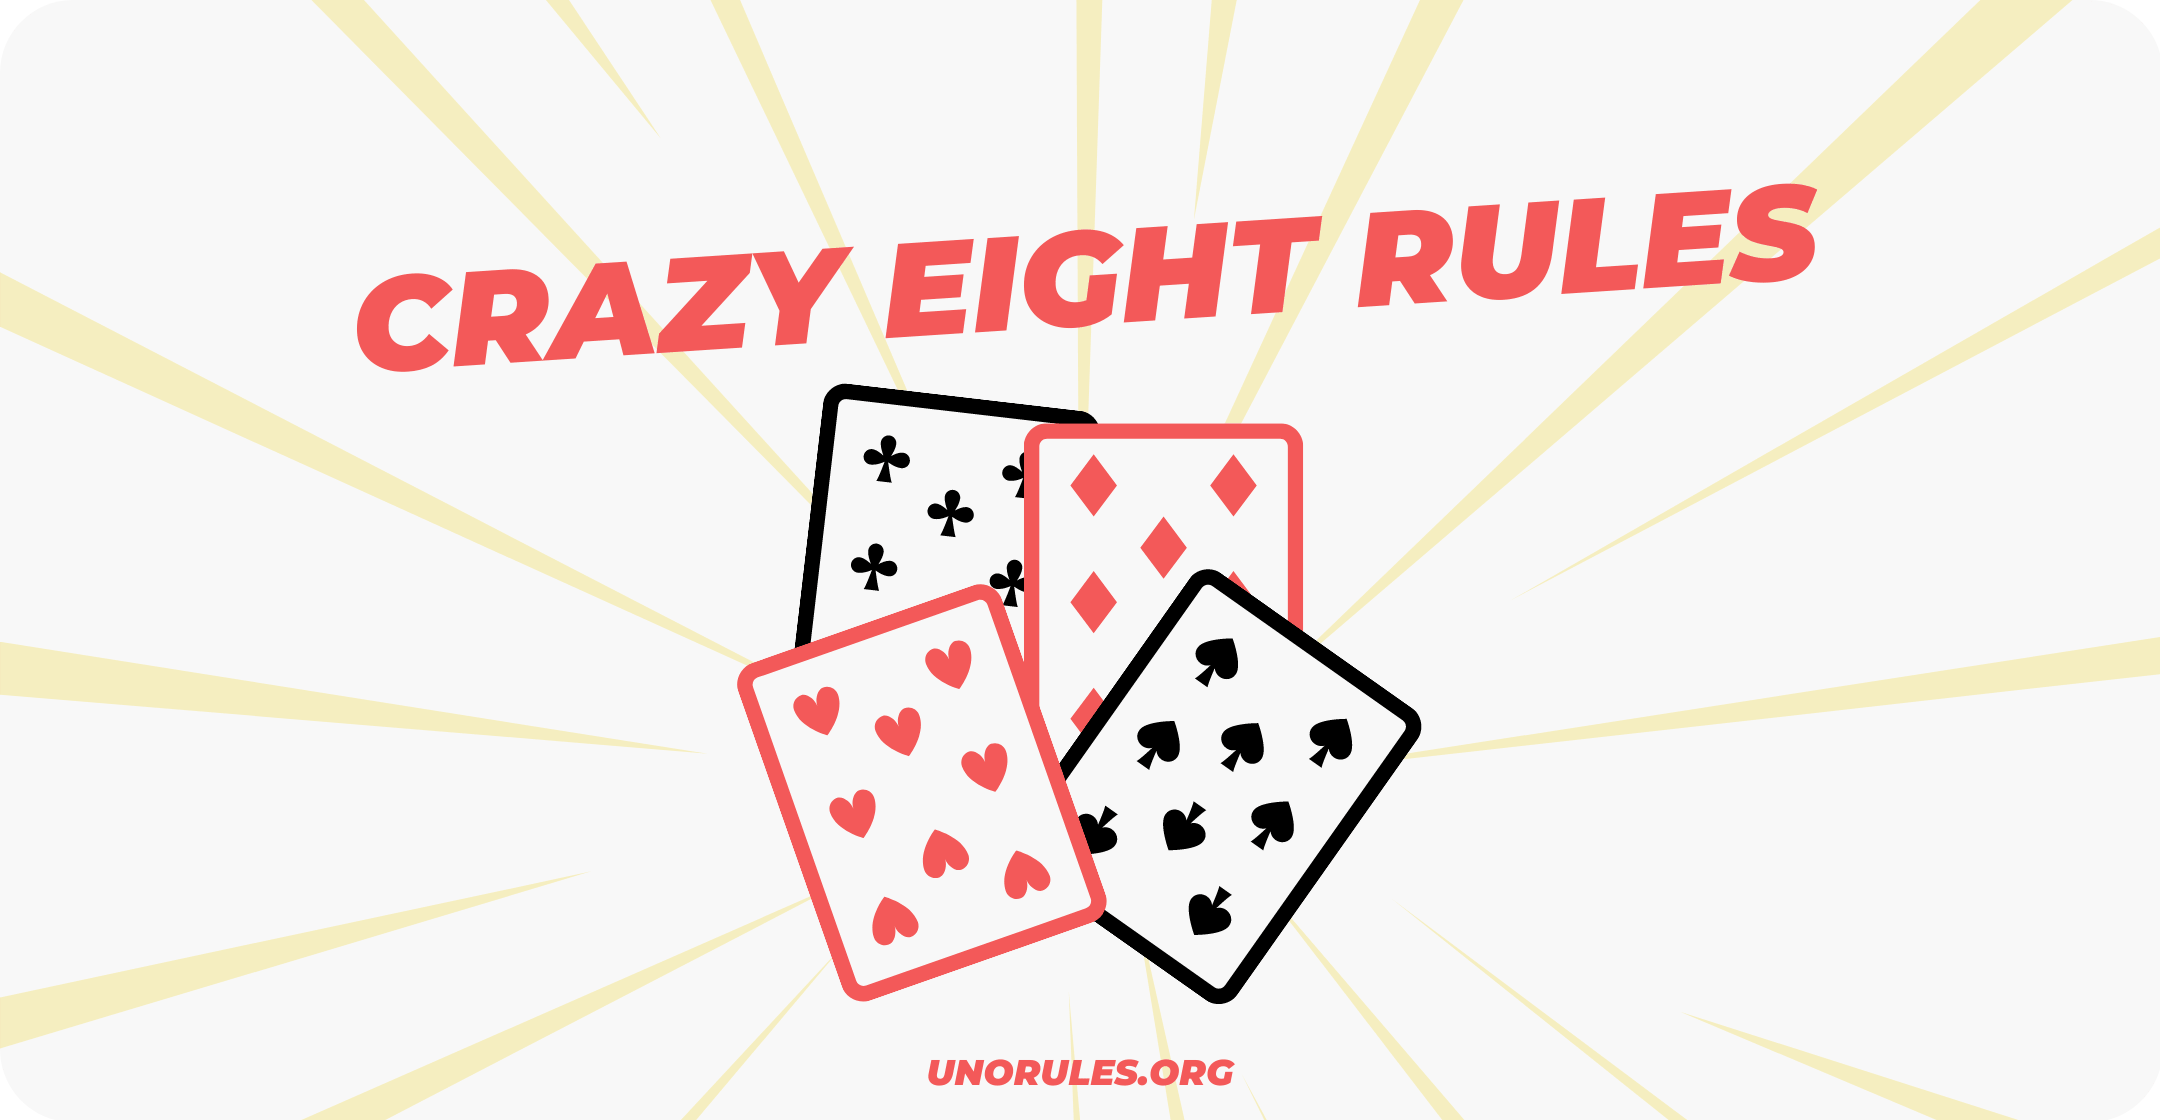 Crazy eights rules